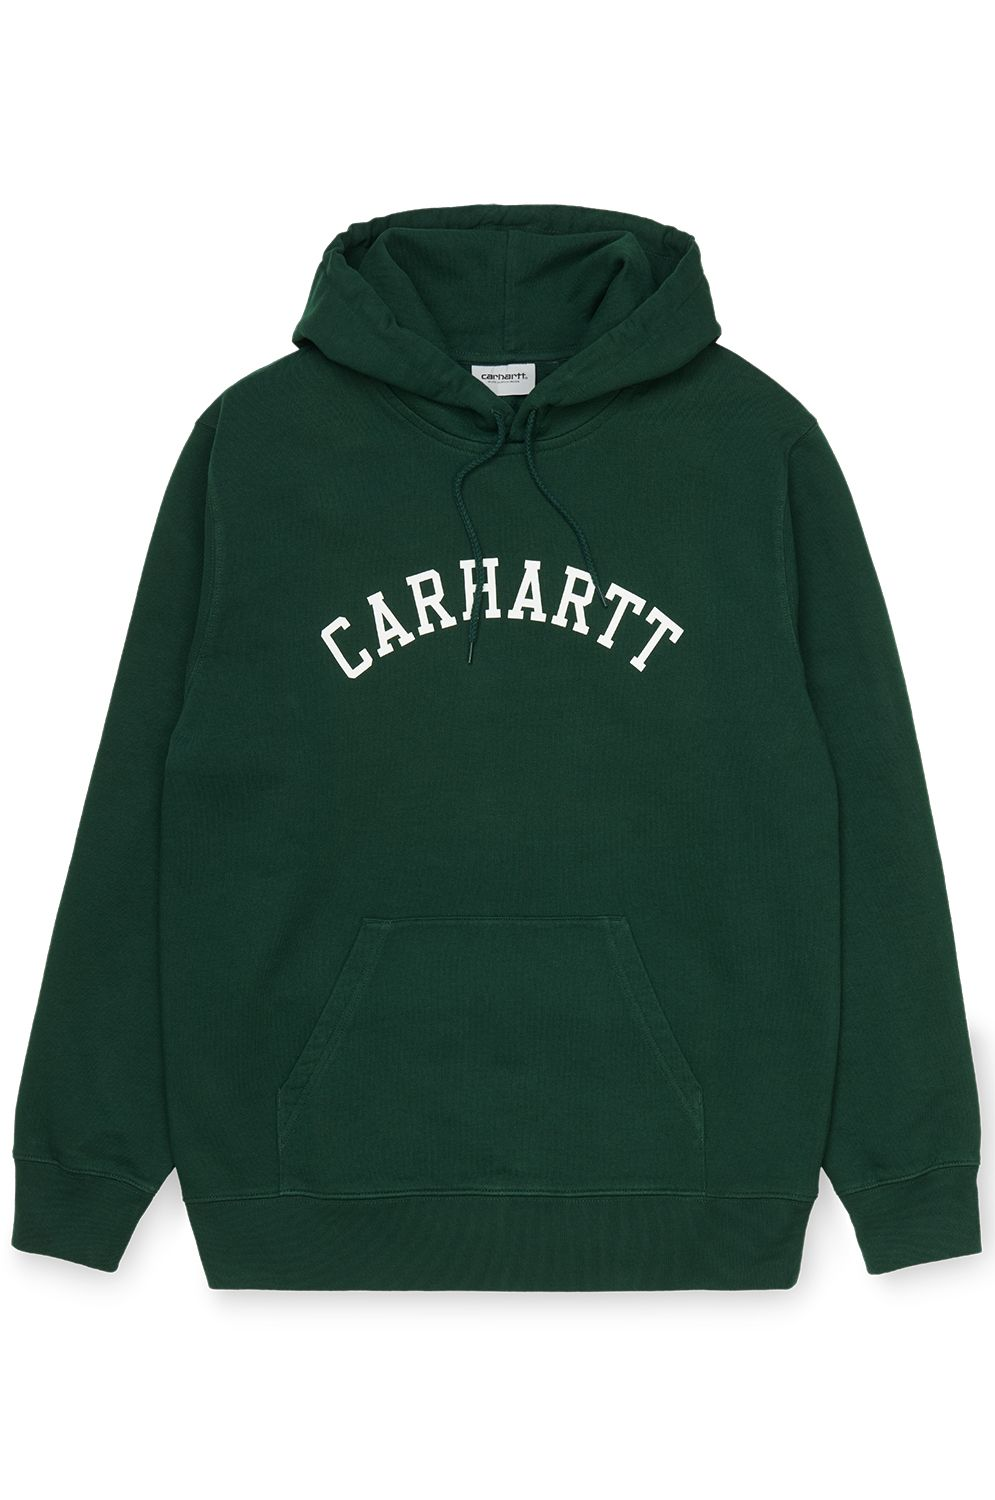 Sweat Capuz Carhartt WIP HOODED UNIVERSITY SWEATSHIRT Bottle Green/White